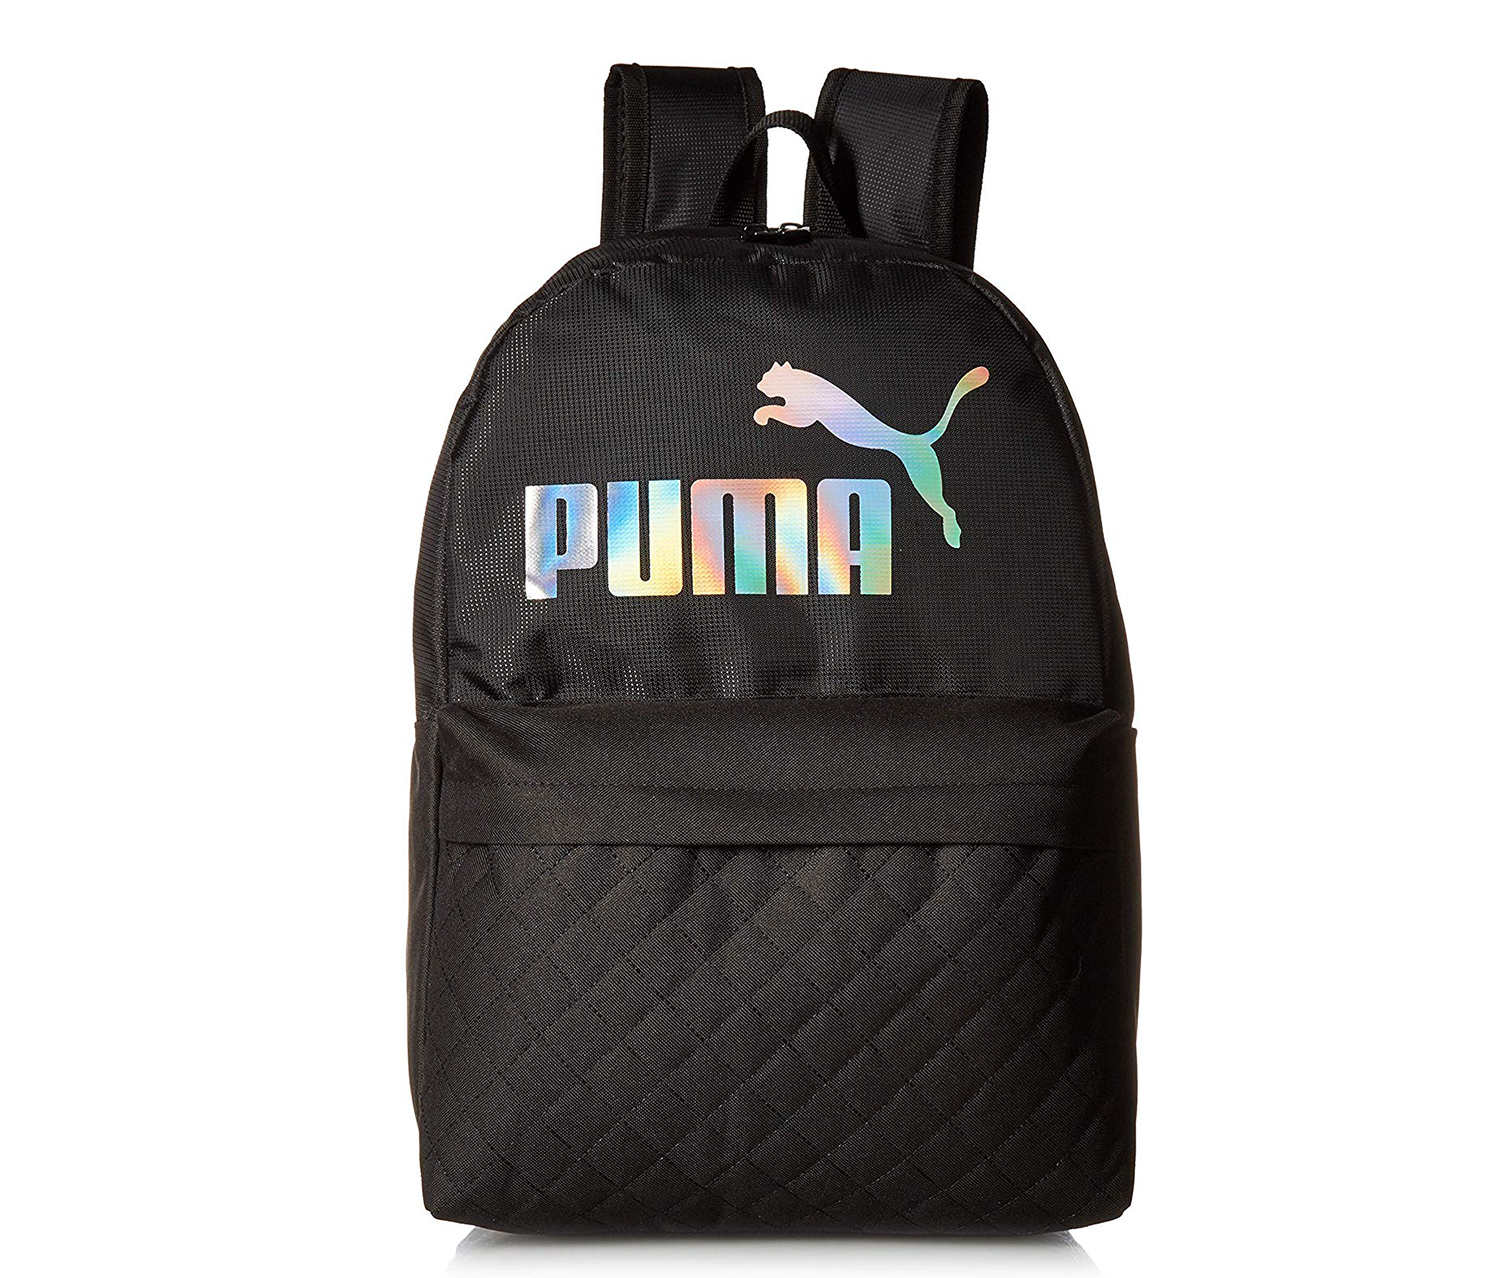 Unisex Backpack, Black